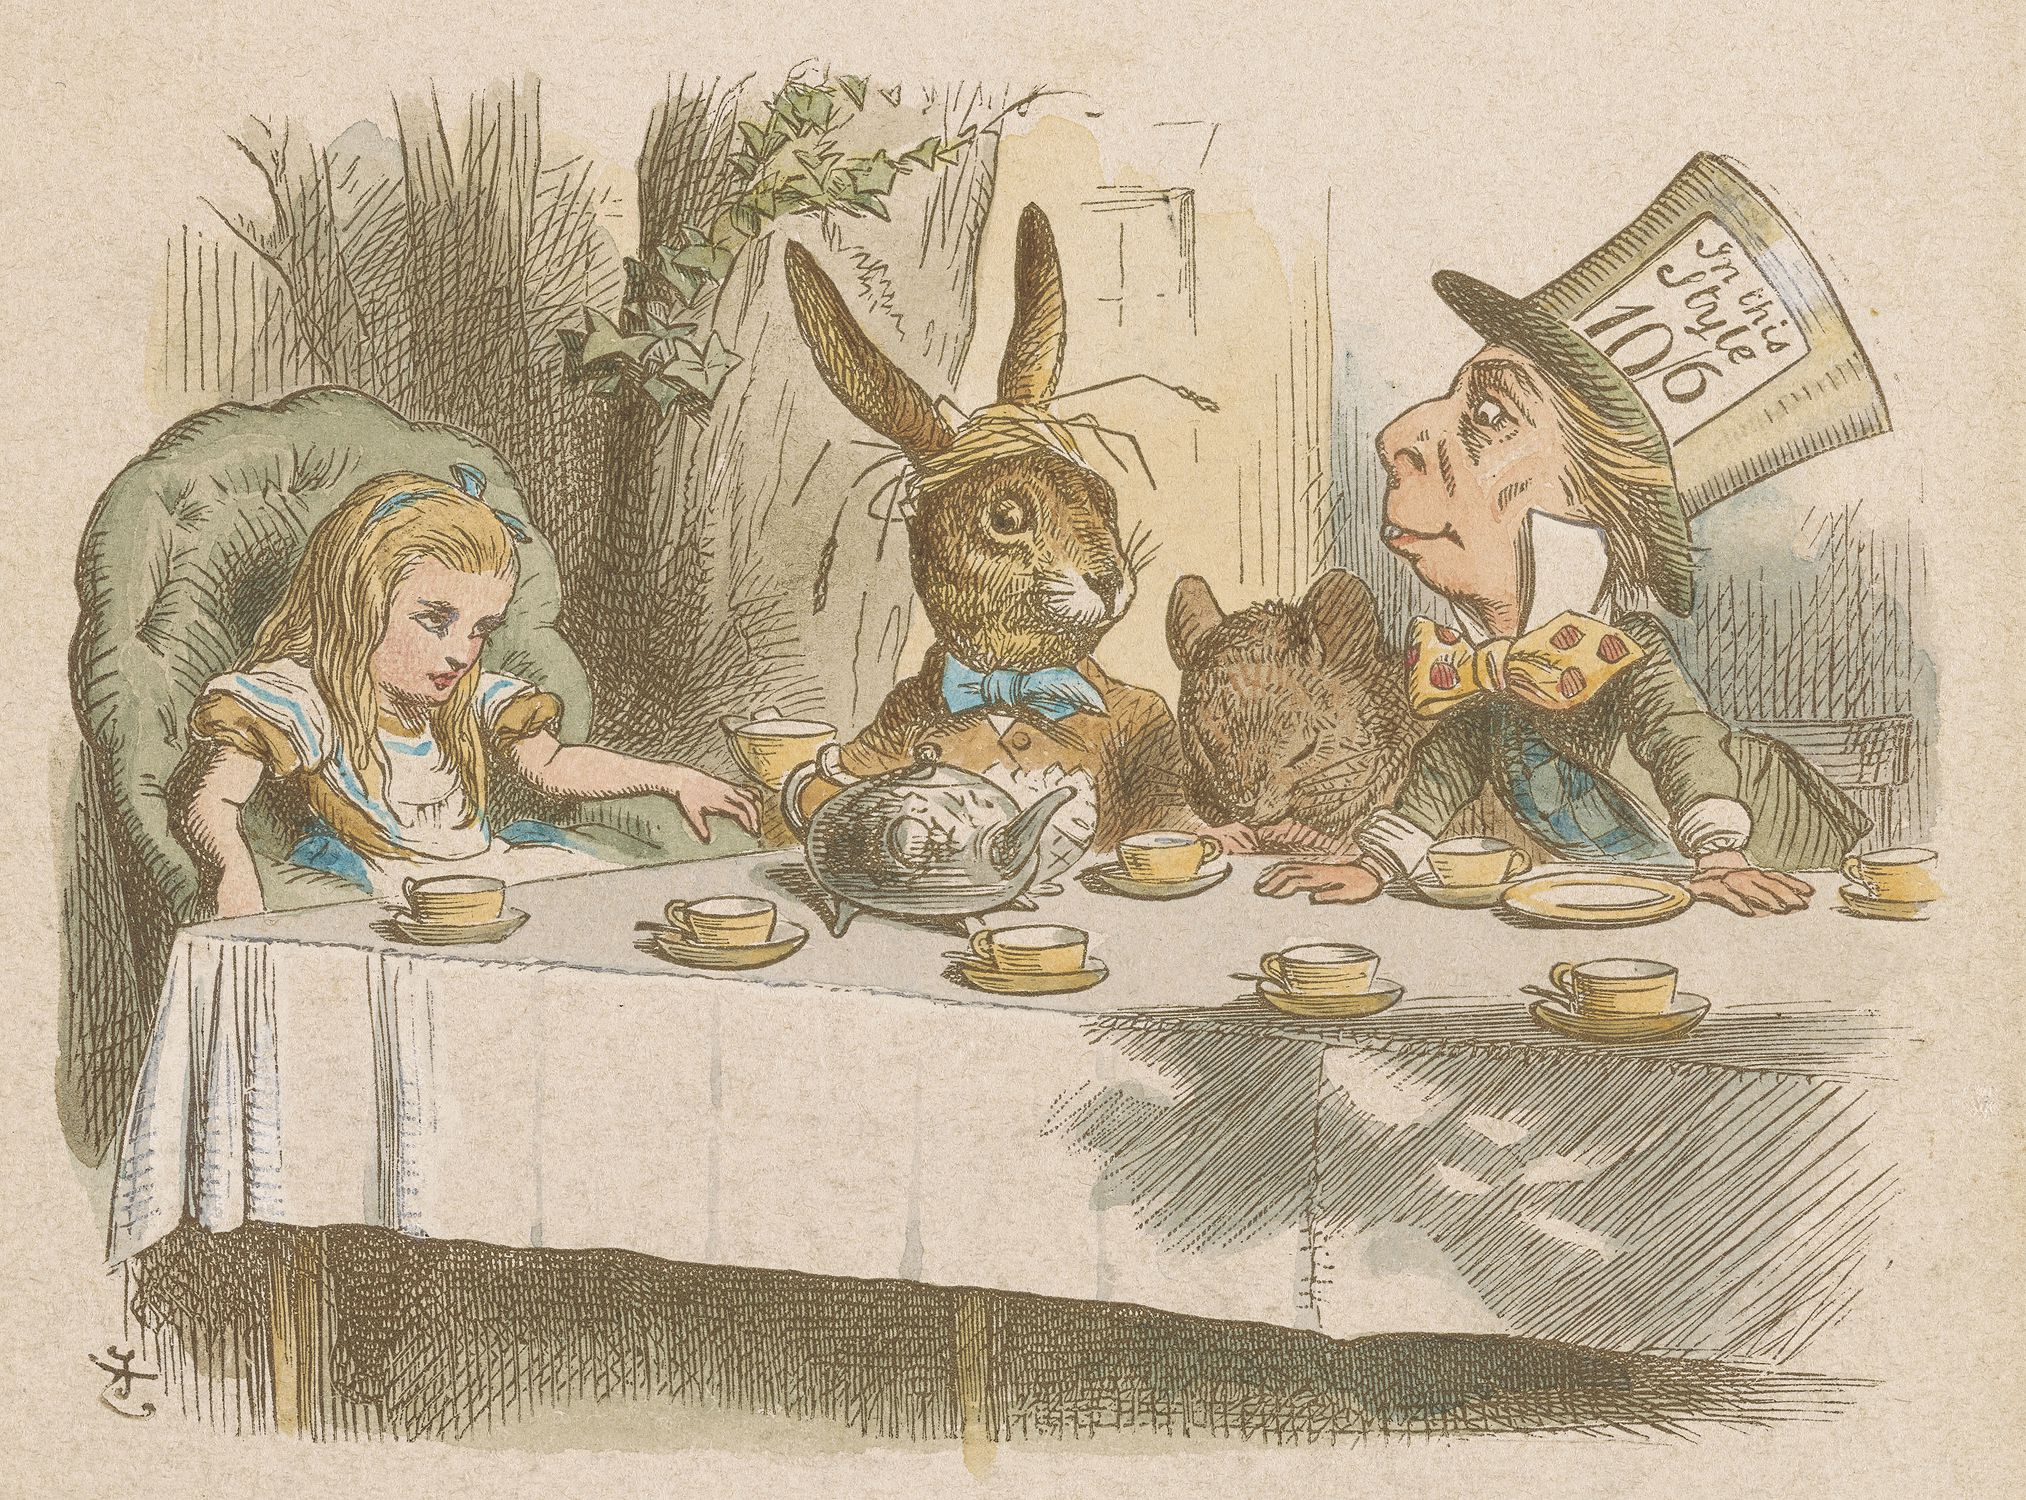 """John Tenniel (1820–1914), """" , Why is a raven like a writing-desk?"""" (The Mad Tea Party), 1885 Hand-colored proof. Gift of Arthur A. Houghton, Jr., The Morgan Library & Museum, Photography by Steven H. Crossot, 2014."""